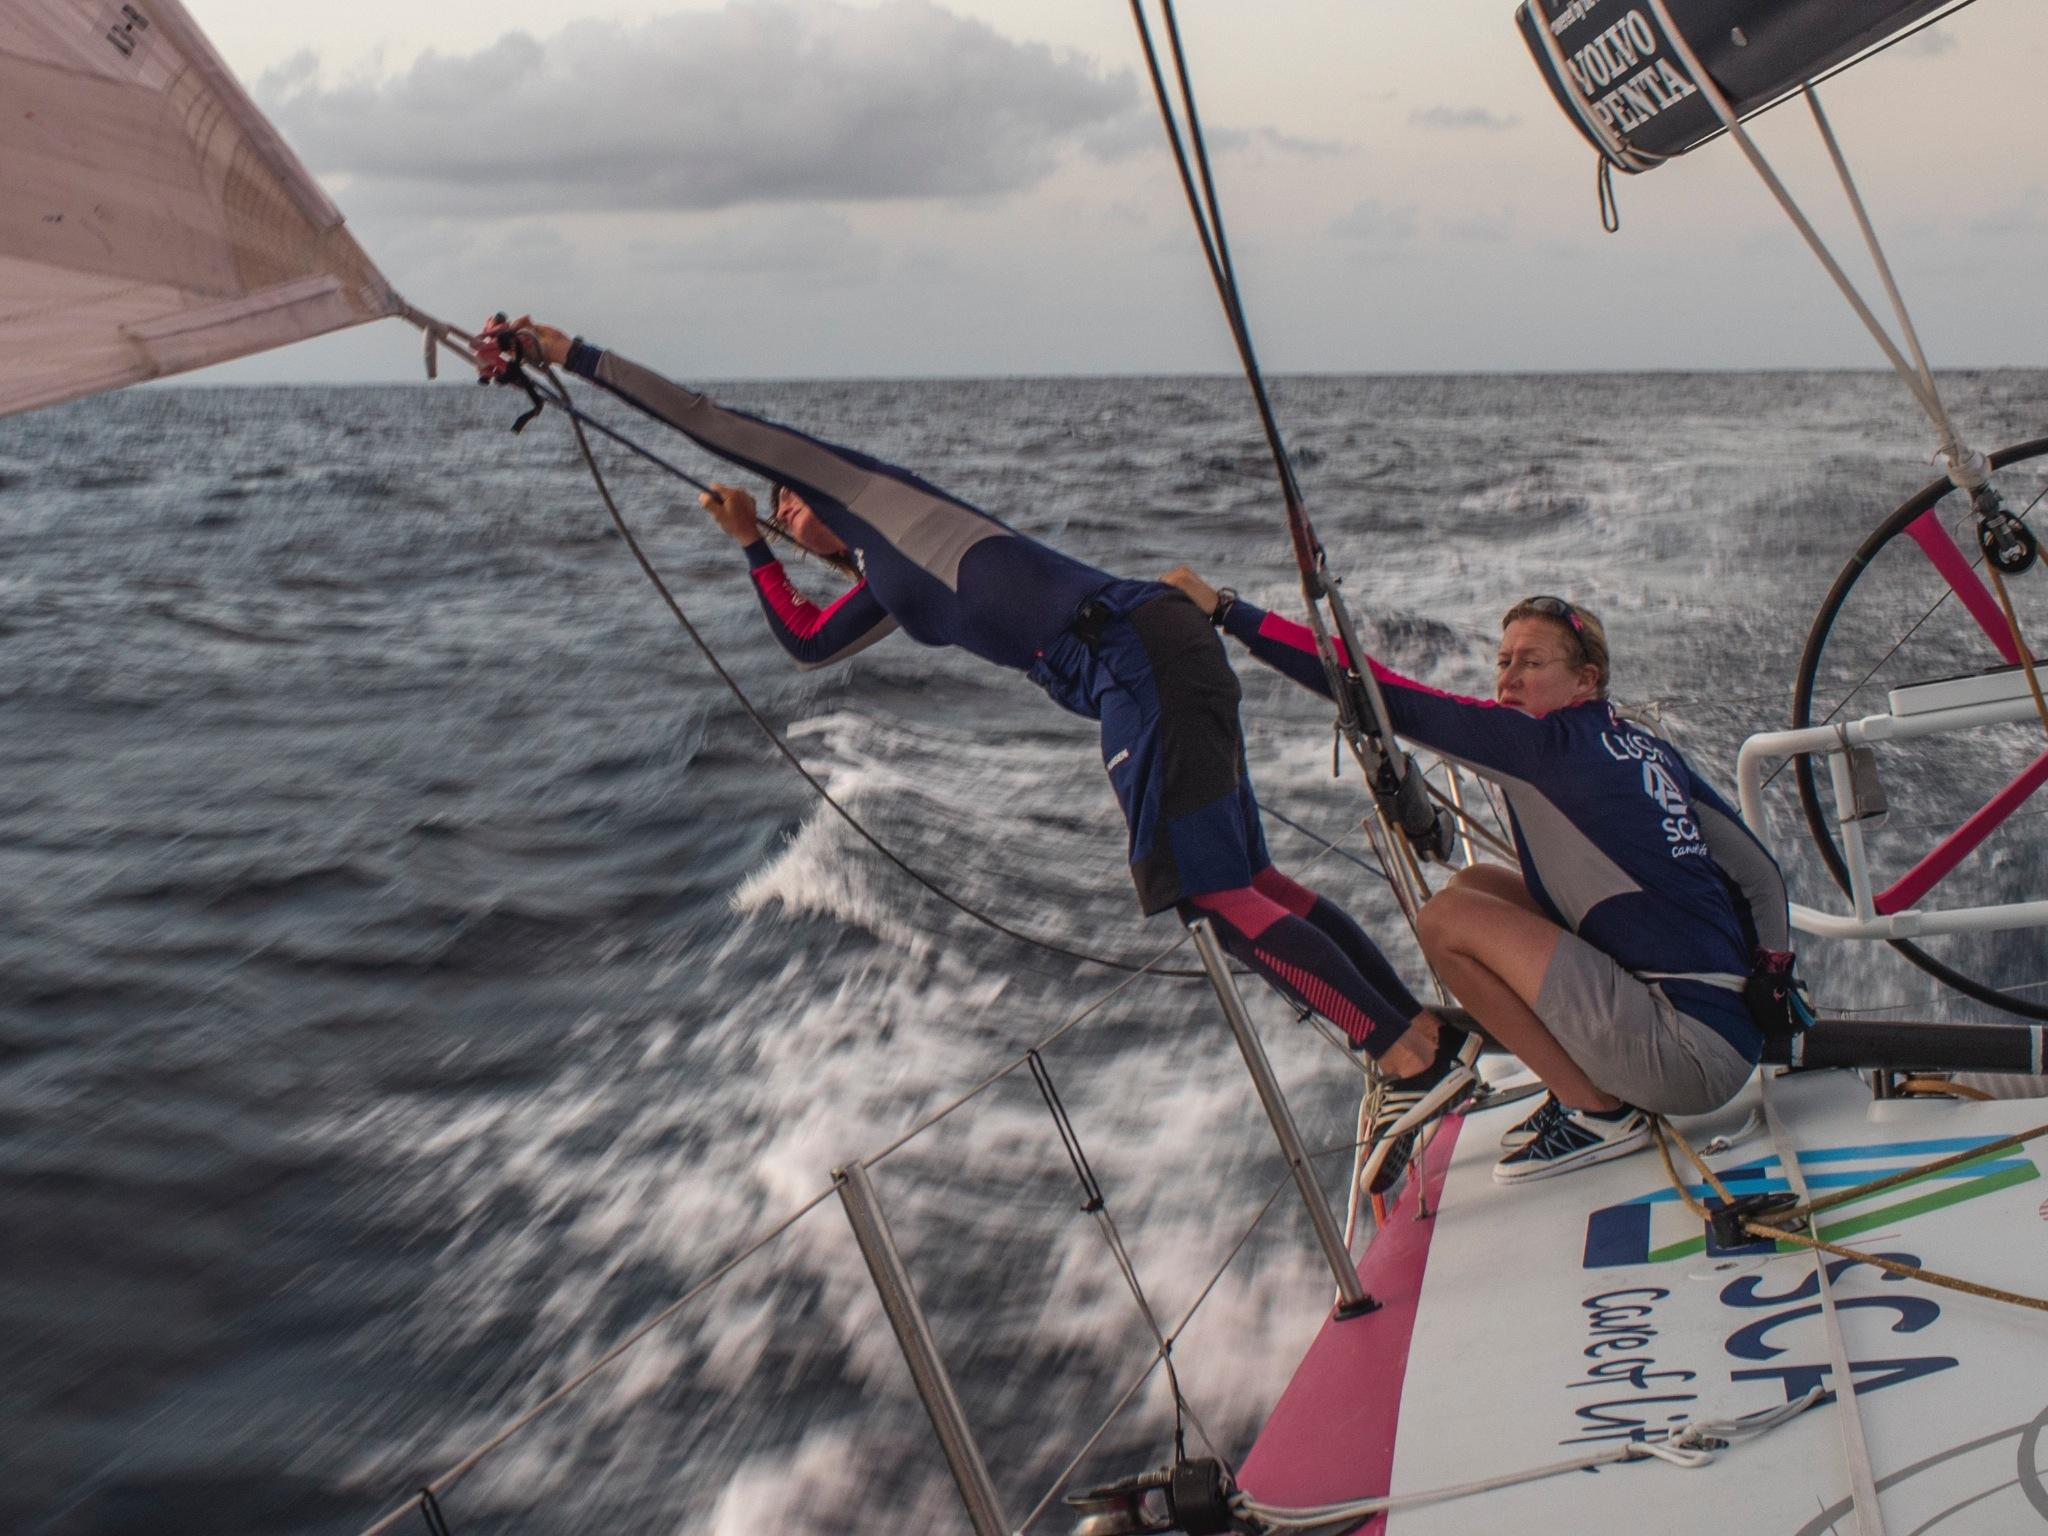 RT @team_sca: Latest blog updates! Day 10 - It's that time… http://t.co/Ye3s98wvTG #teamsca #raceblog #vor http://t.co/39D54C8e0z